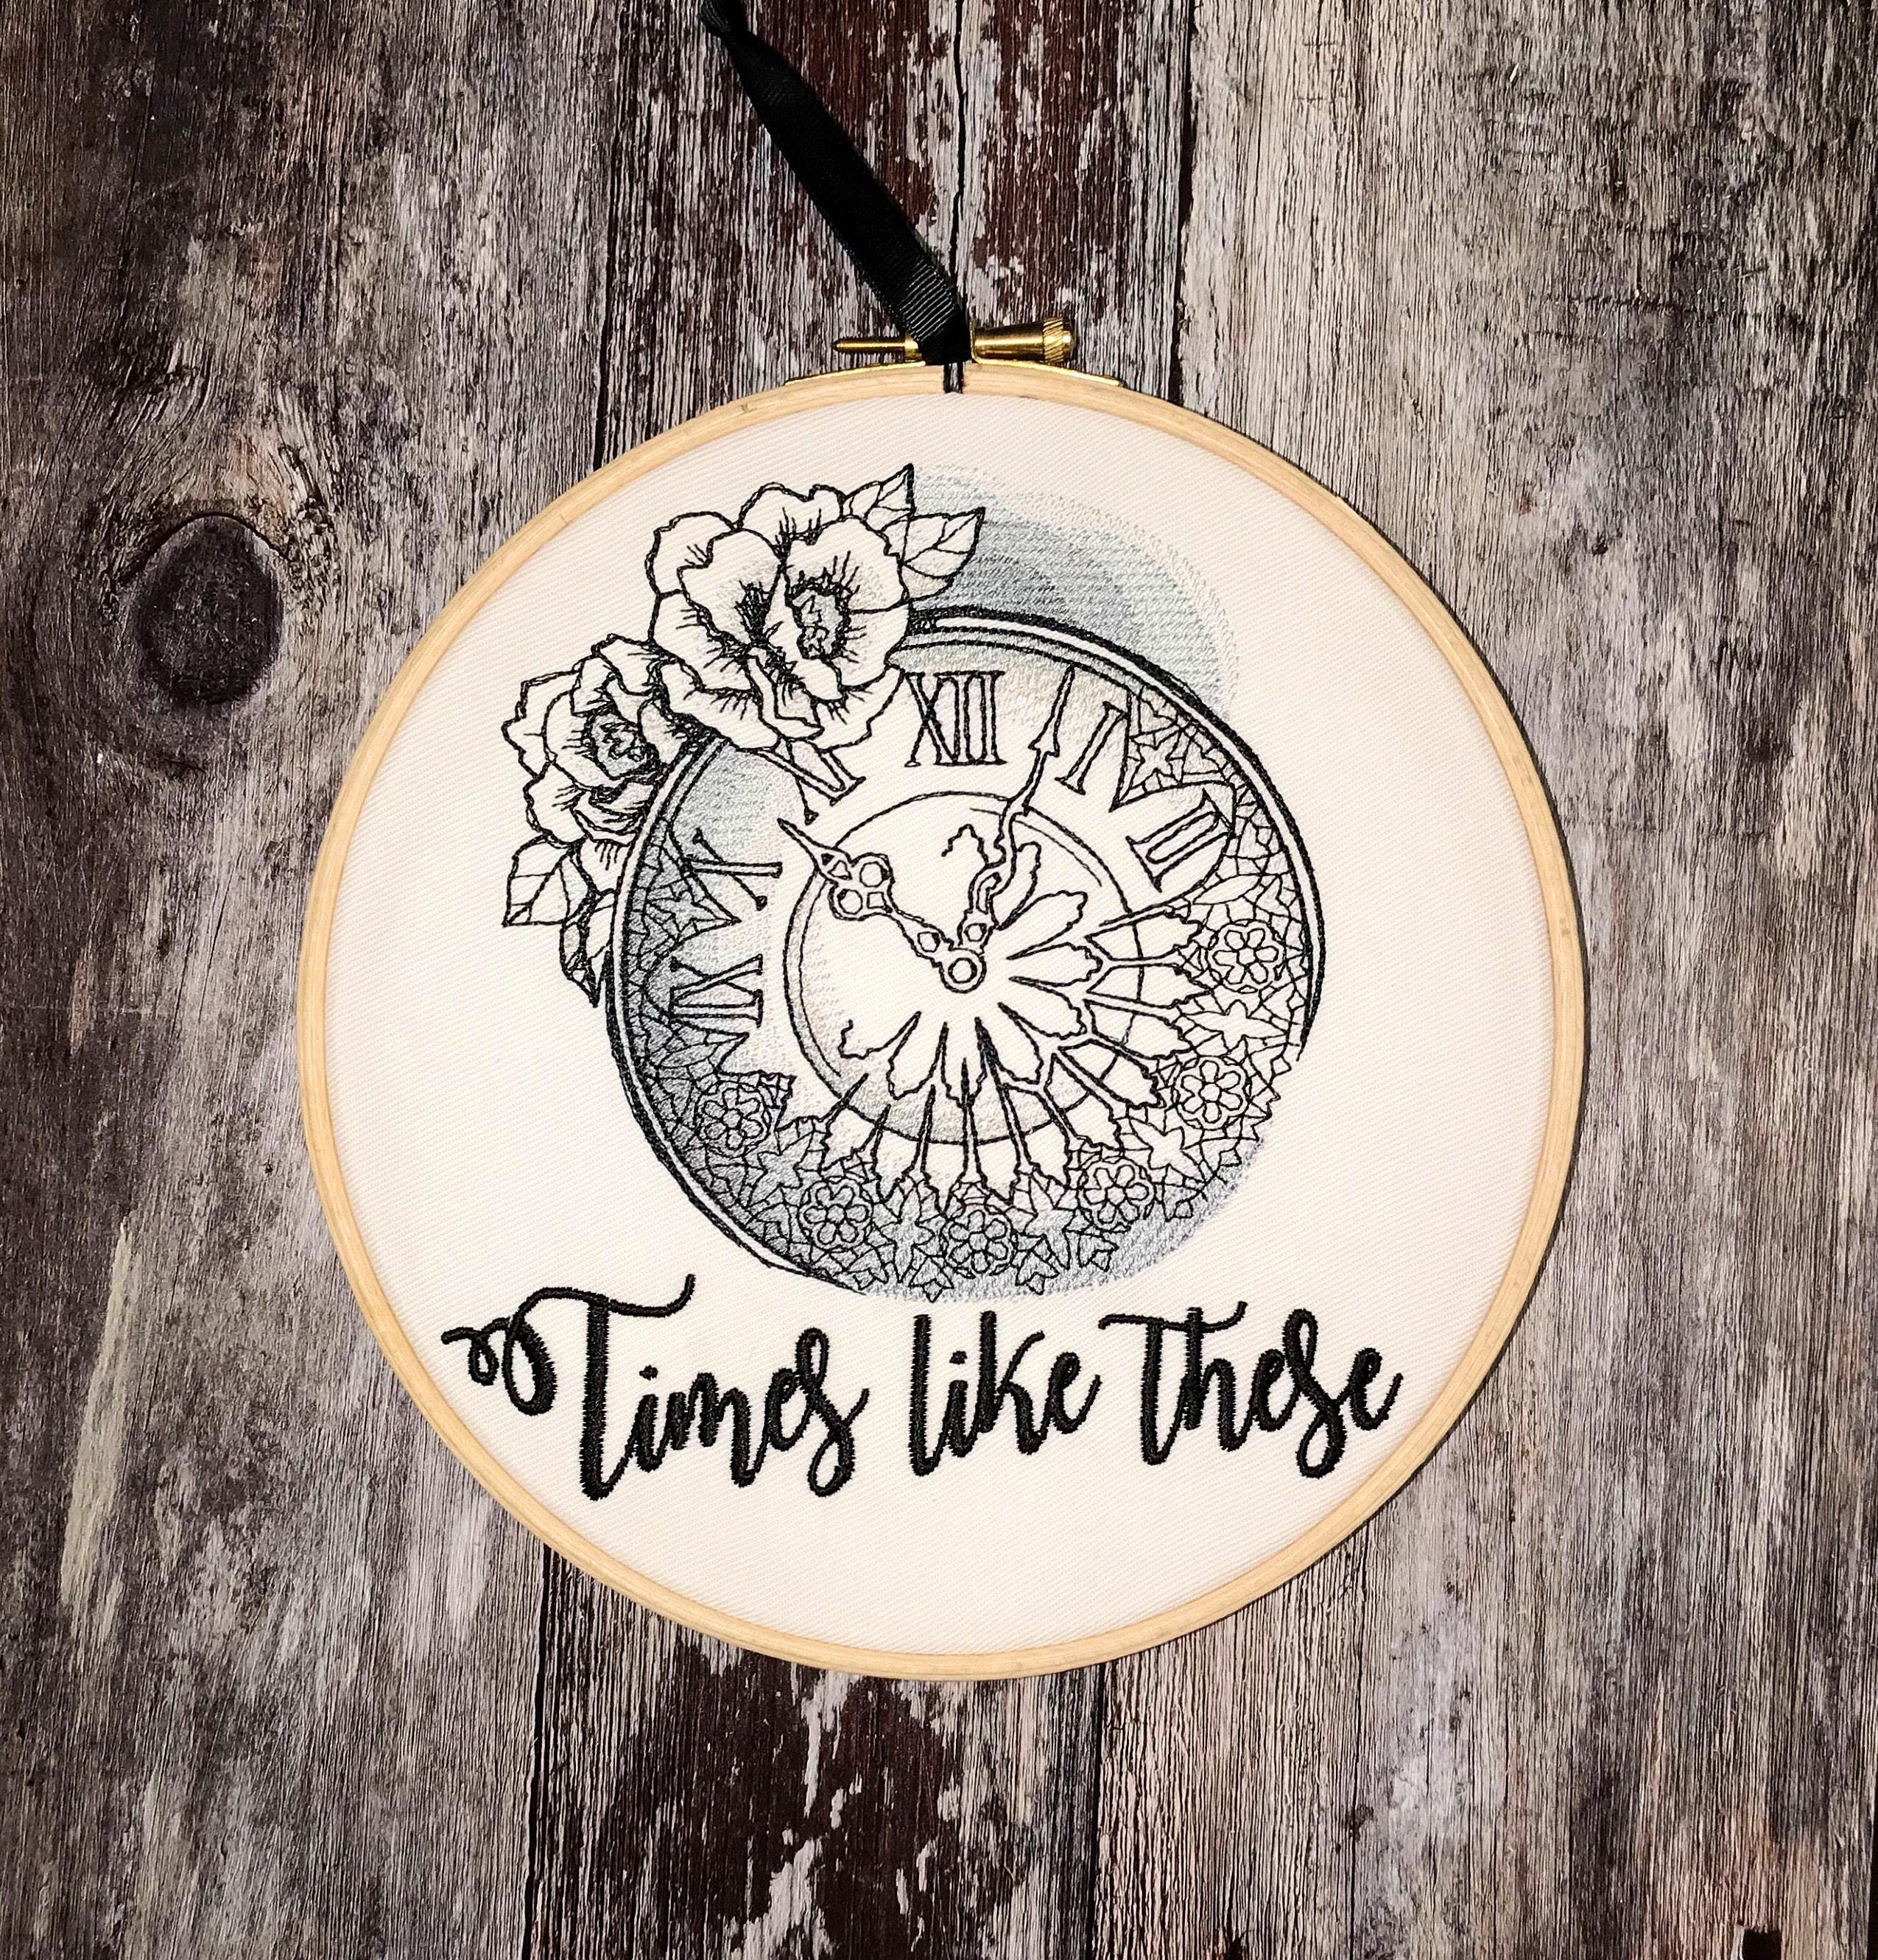 Times like these, Foo Fighters Embroidery hoop art